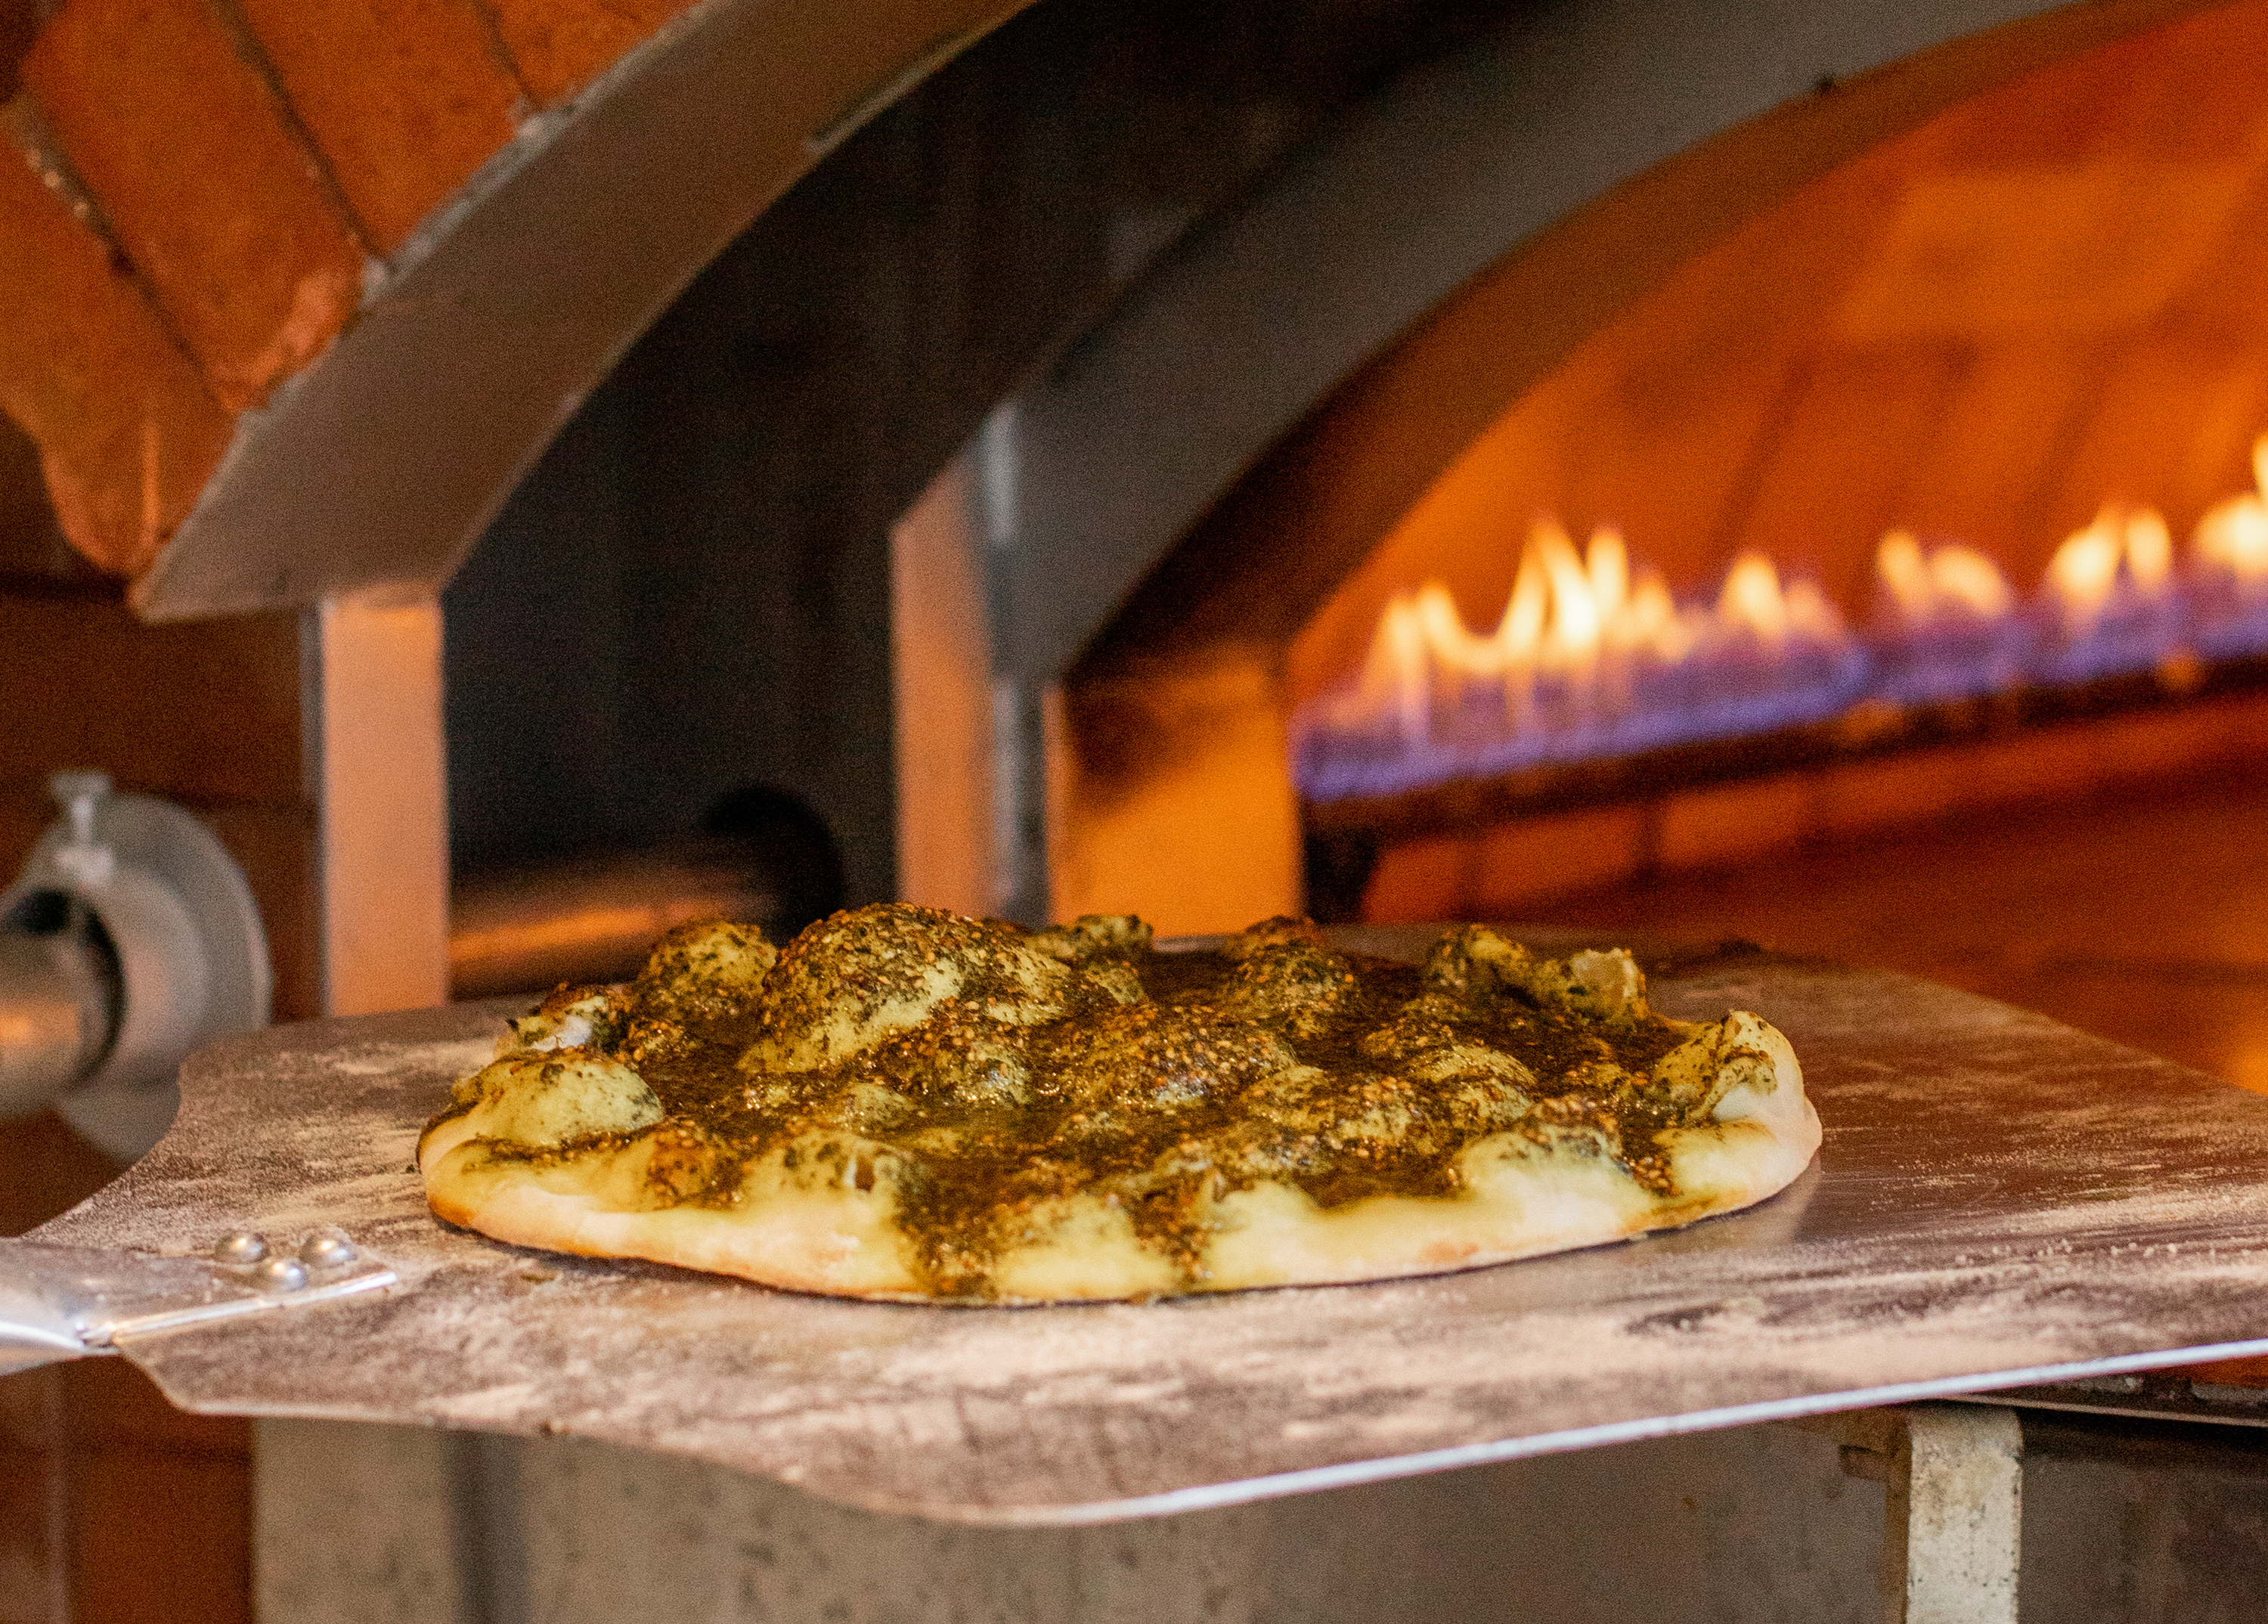 The Plateau's New Lebanese Café Chez Téta is Firing Up Manakish in an Imported 1.5-Ton Oven